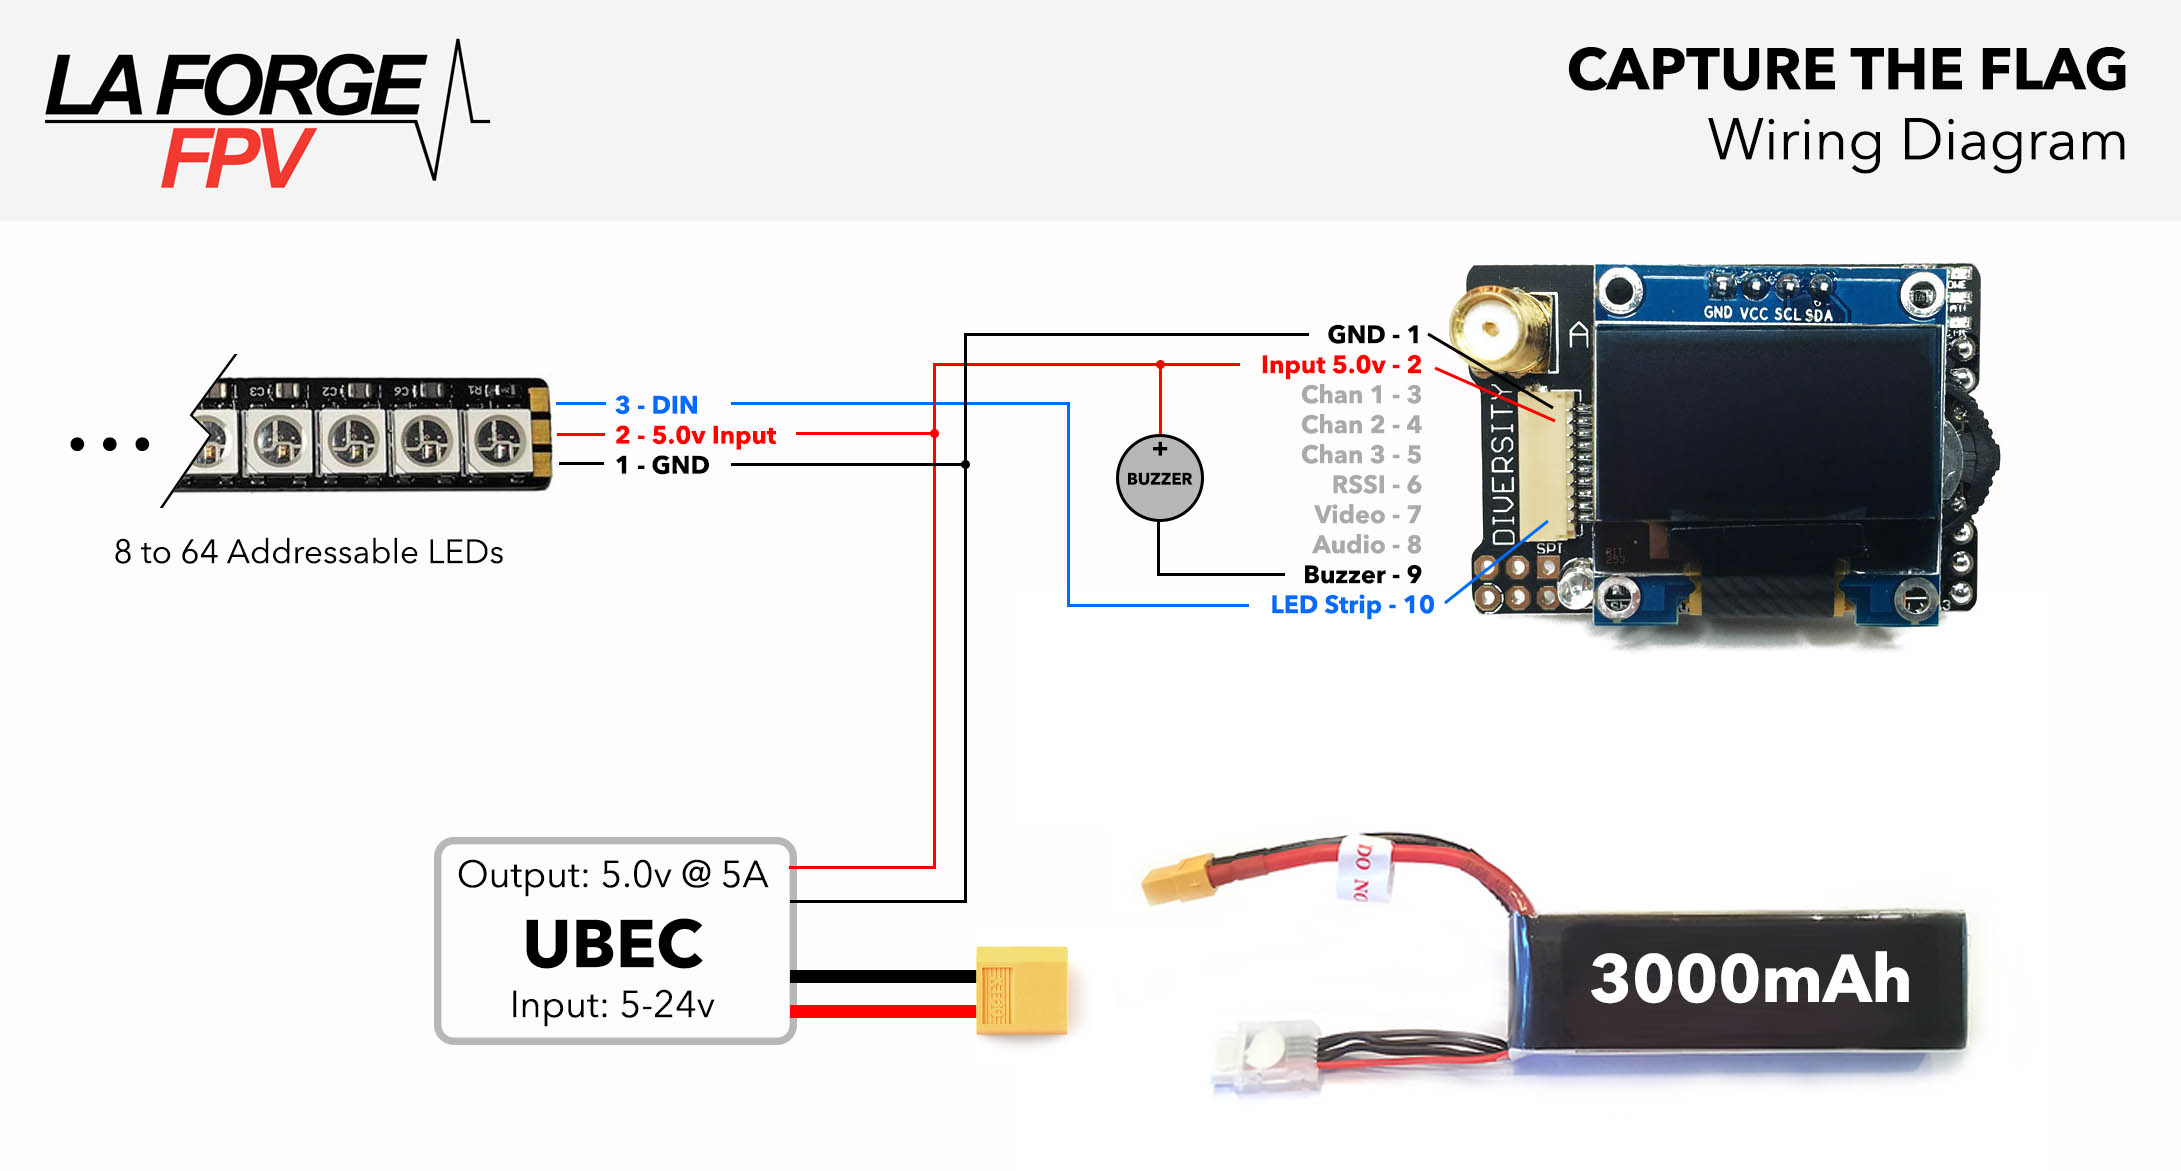 fpv wiring diagram carrier air conditioning camera to transmitter chevrolet